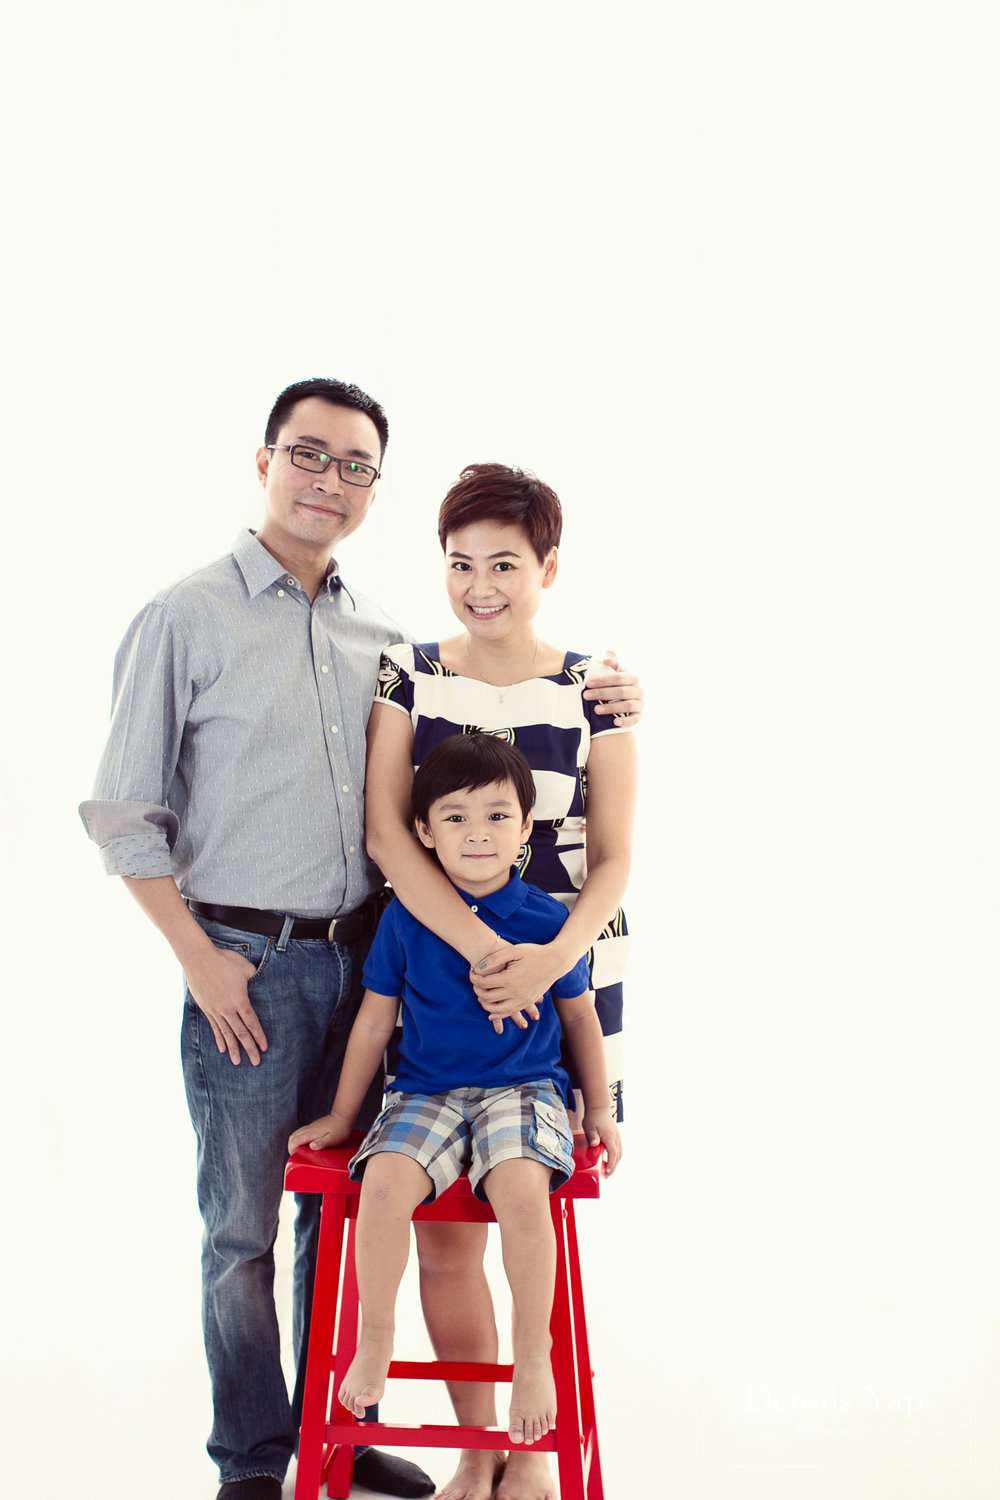 agnes chinese new year family portrait dennis yap photography malaysia wedding photographer-2.jpg